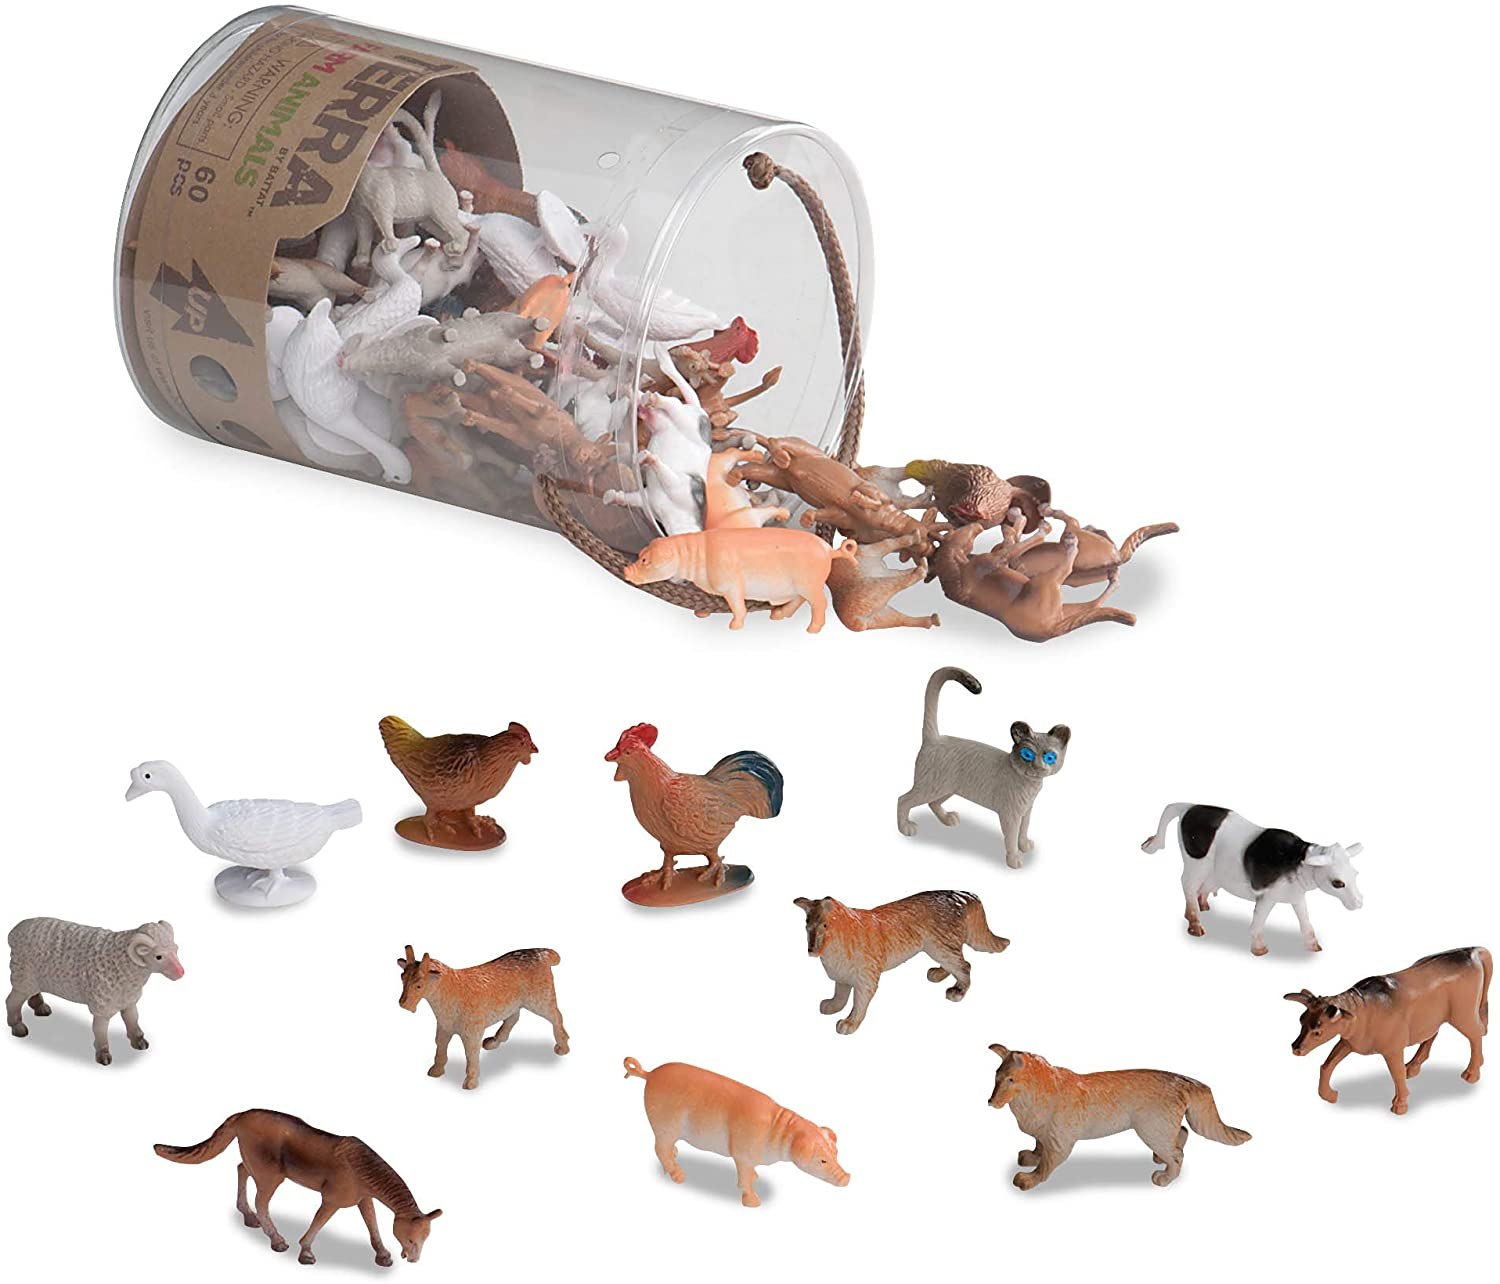 Battat Terra Farm Animals In Tube Action Figure Set Toysmith 68808